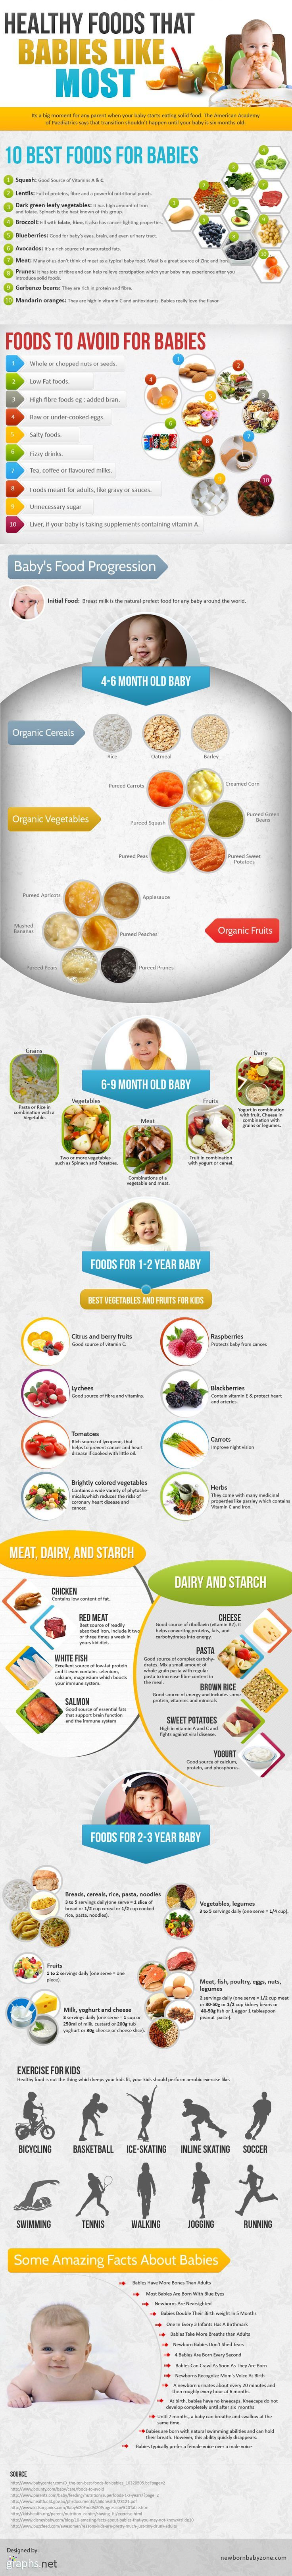 Healthy Foods That Babies Like Most | IVF (In Vitro Fertilization) Center in the Philippines, Manila/Asia | Victory ART Laboratory